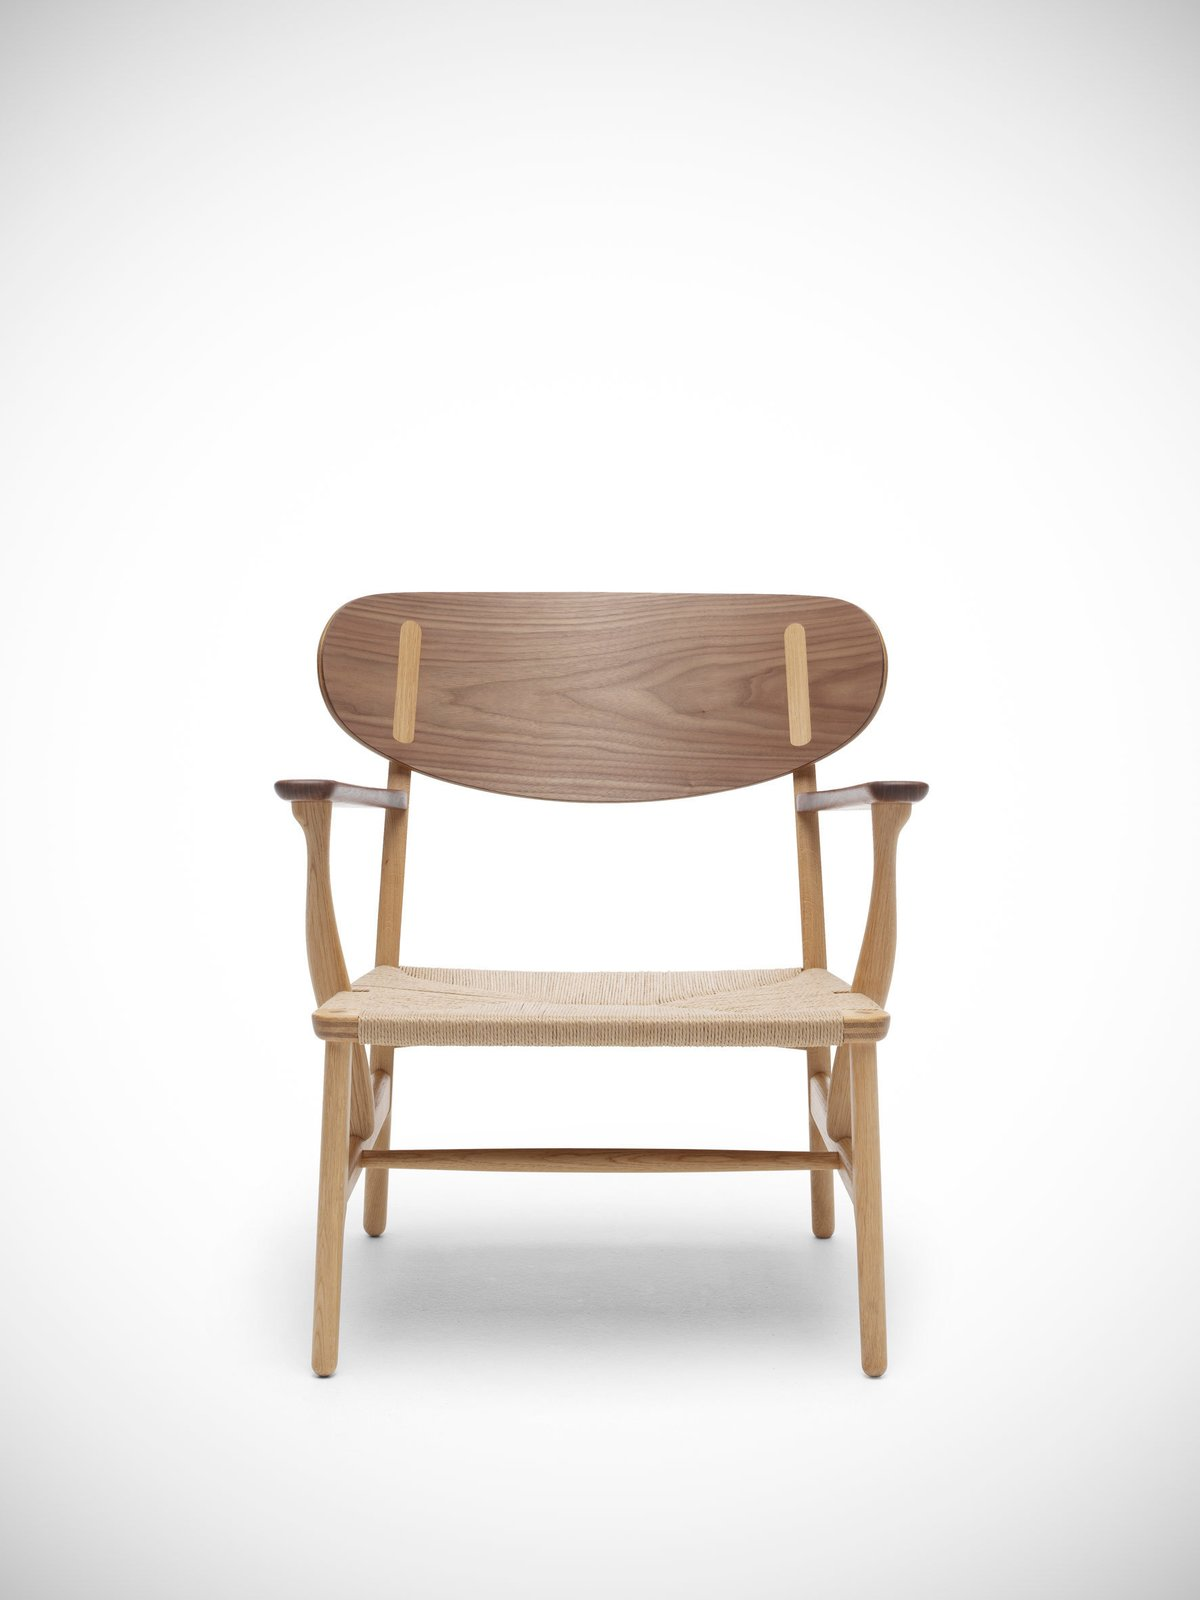 Photo 2 of 7 in CH23 And CH22 Chairs By Hans J. Wegner